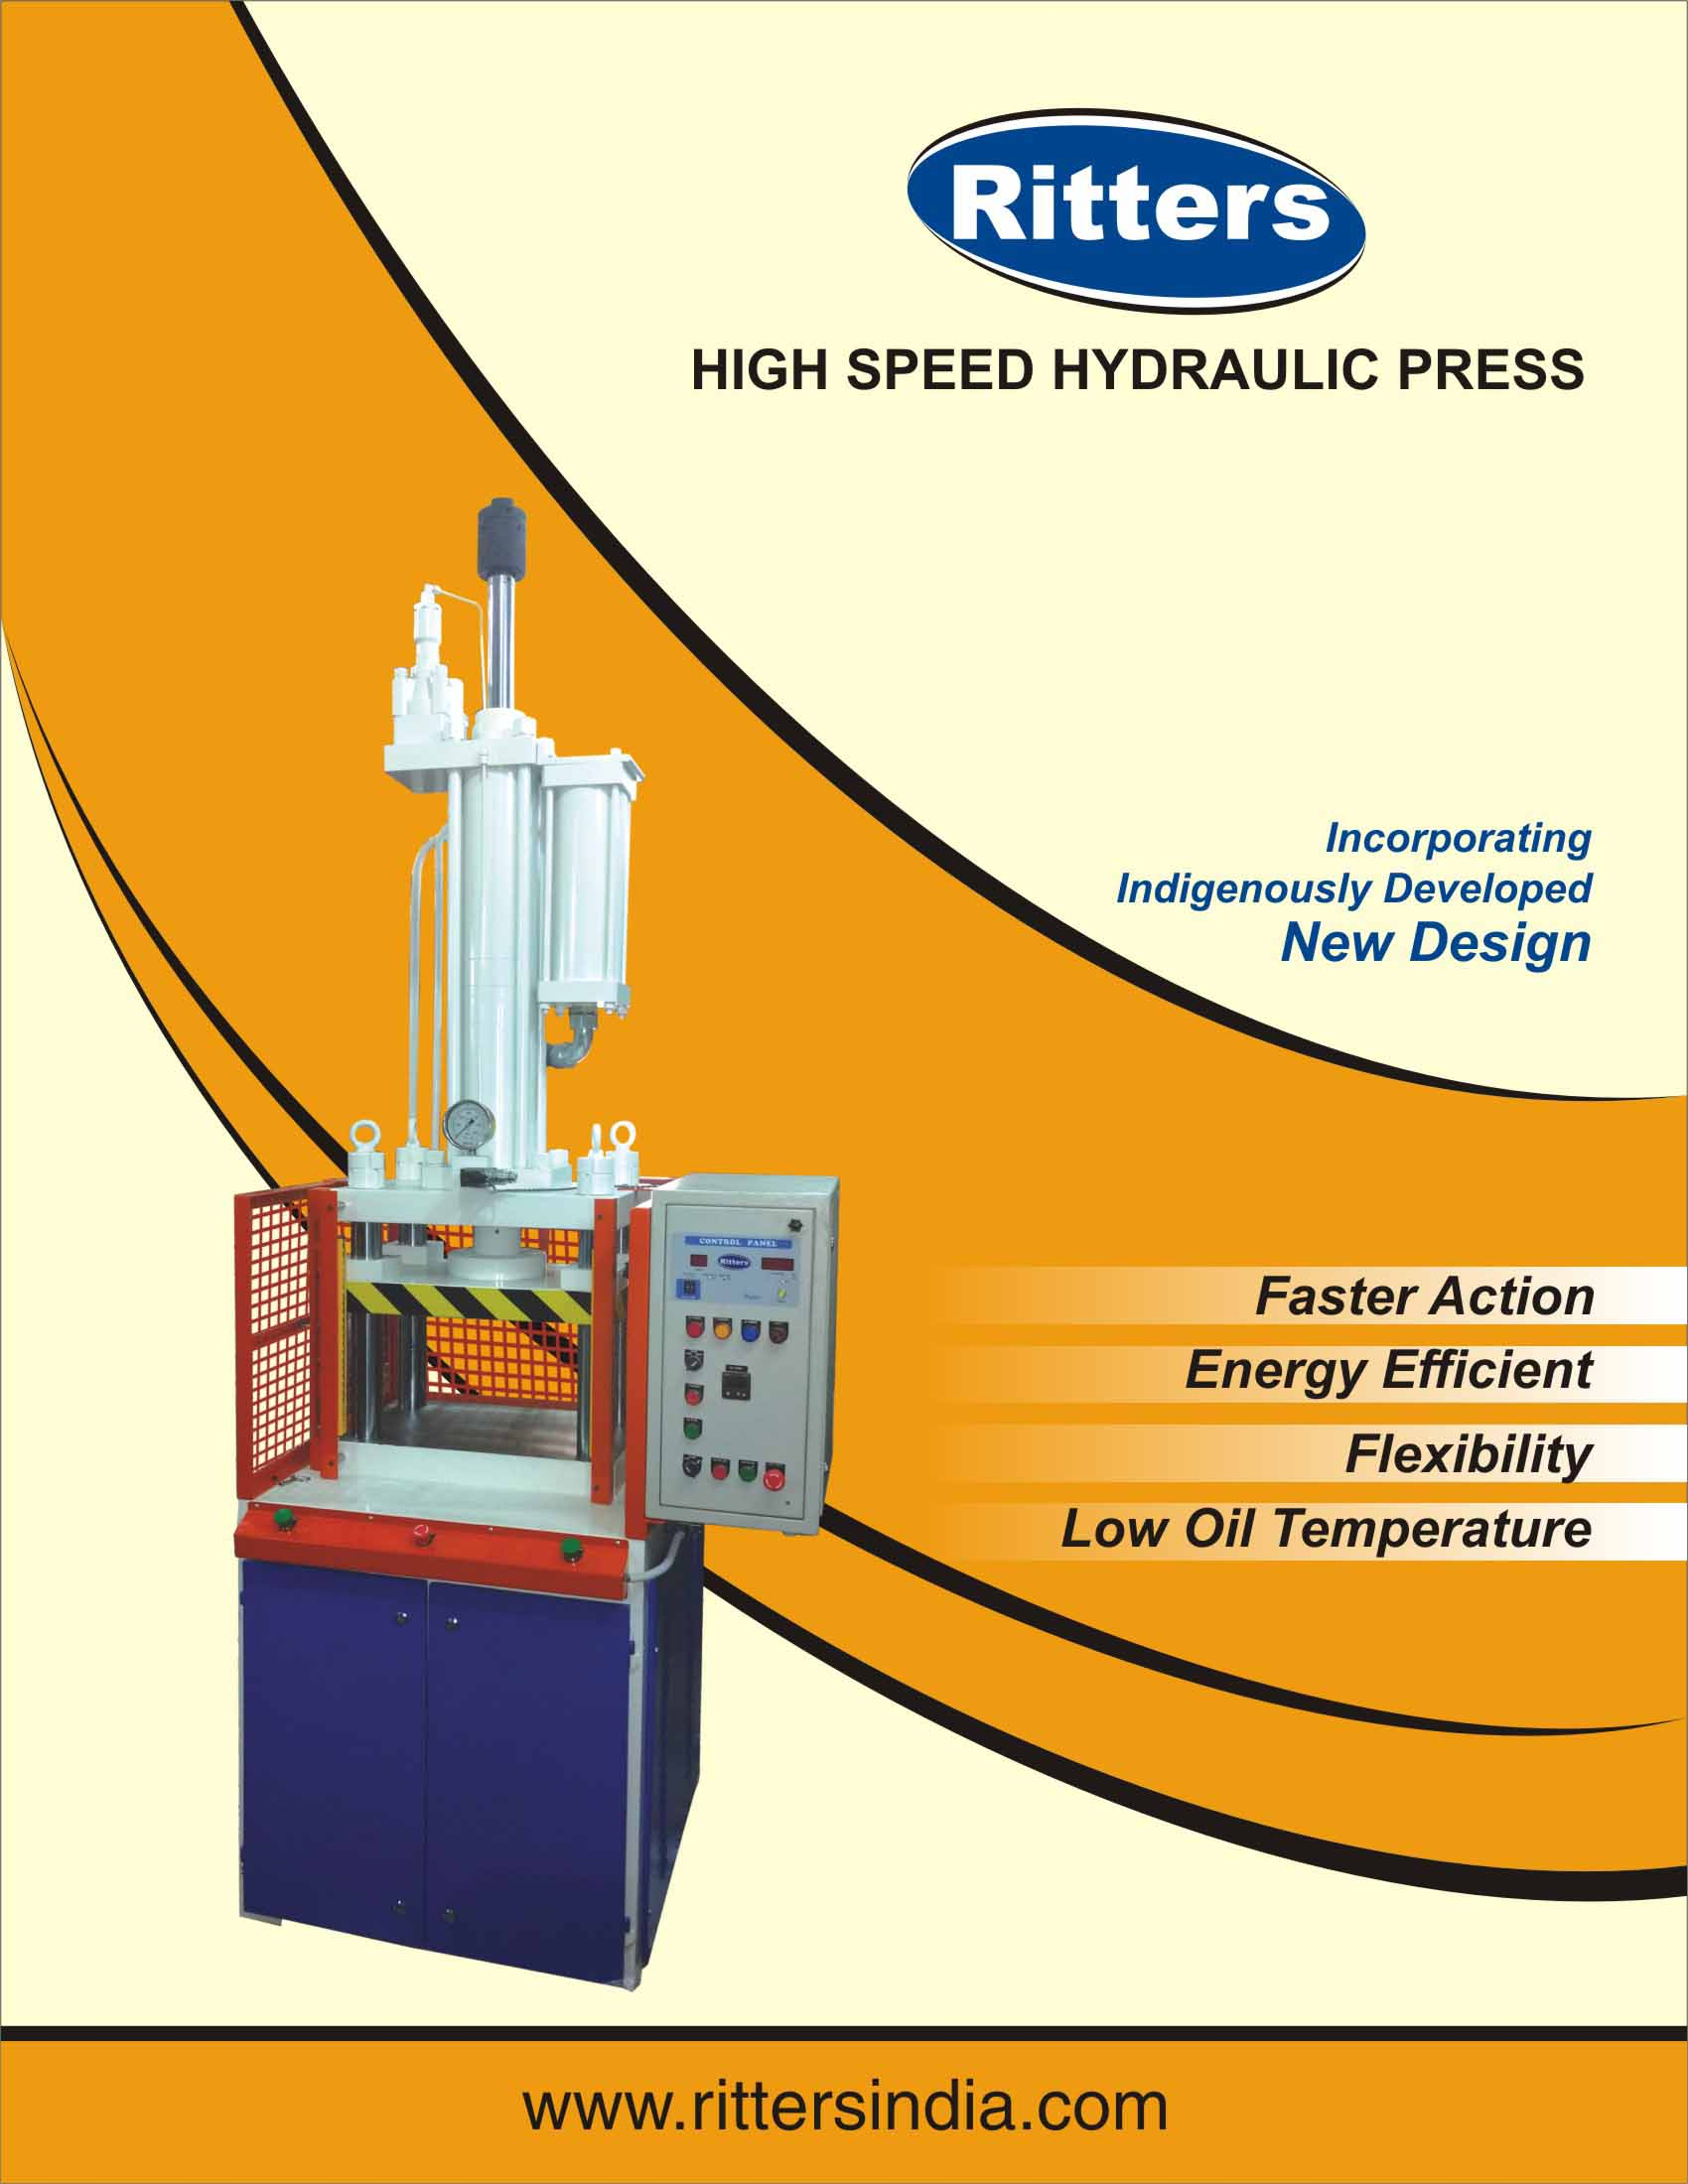 Just Launched New Indigenously & Innovatively Designed High Speed Compact Hydraulic Press